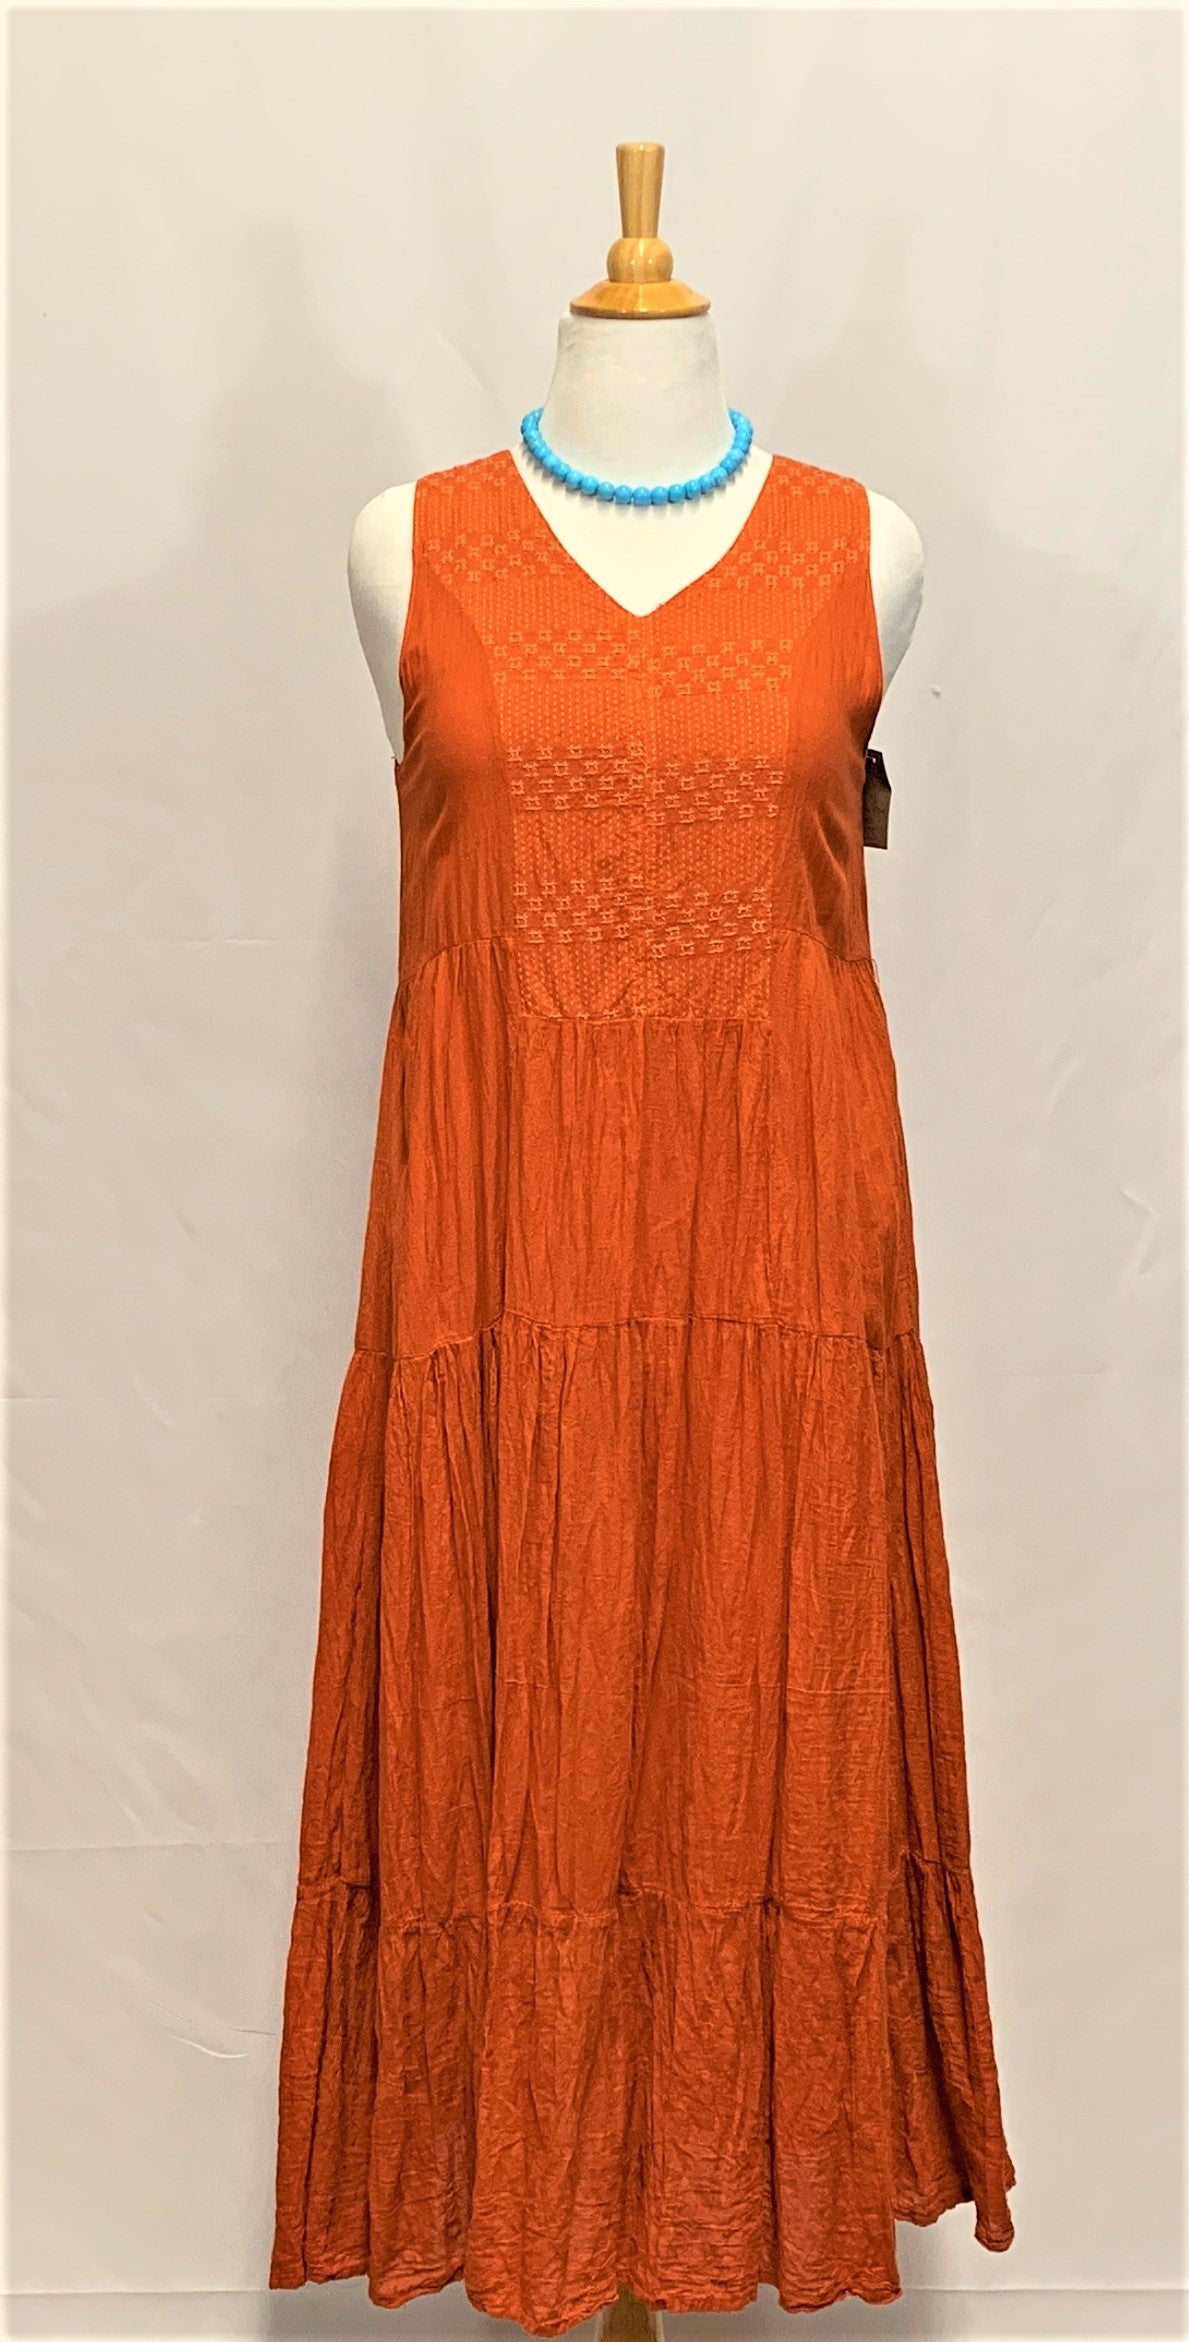 Boho Cotton V-Neck Dress